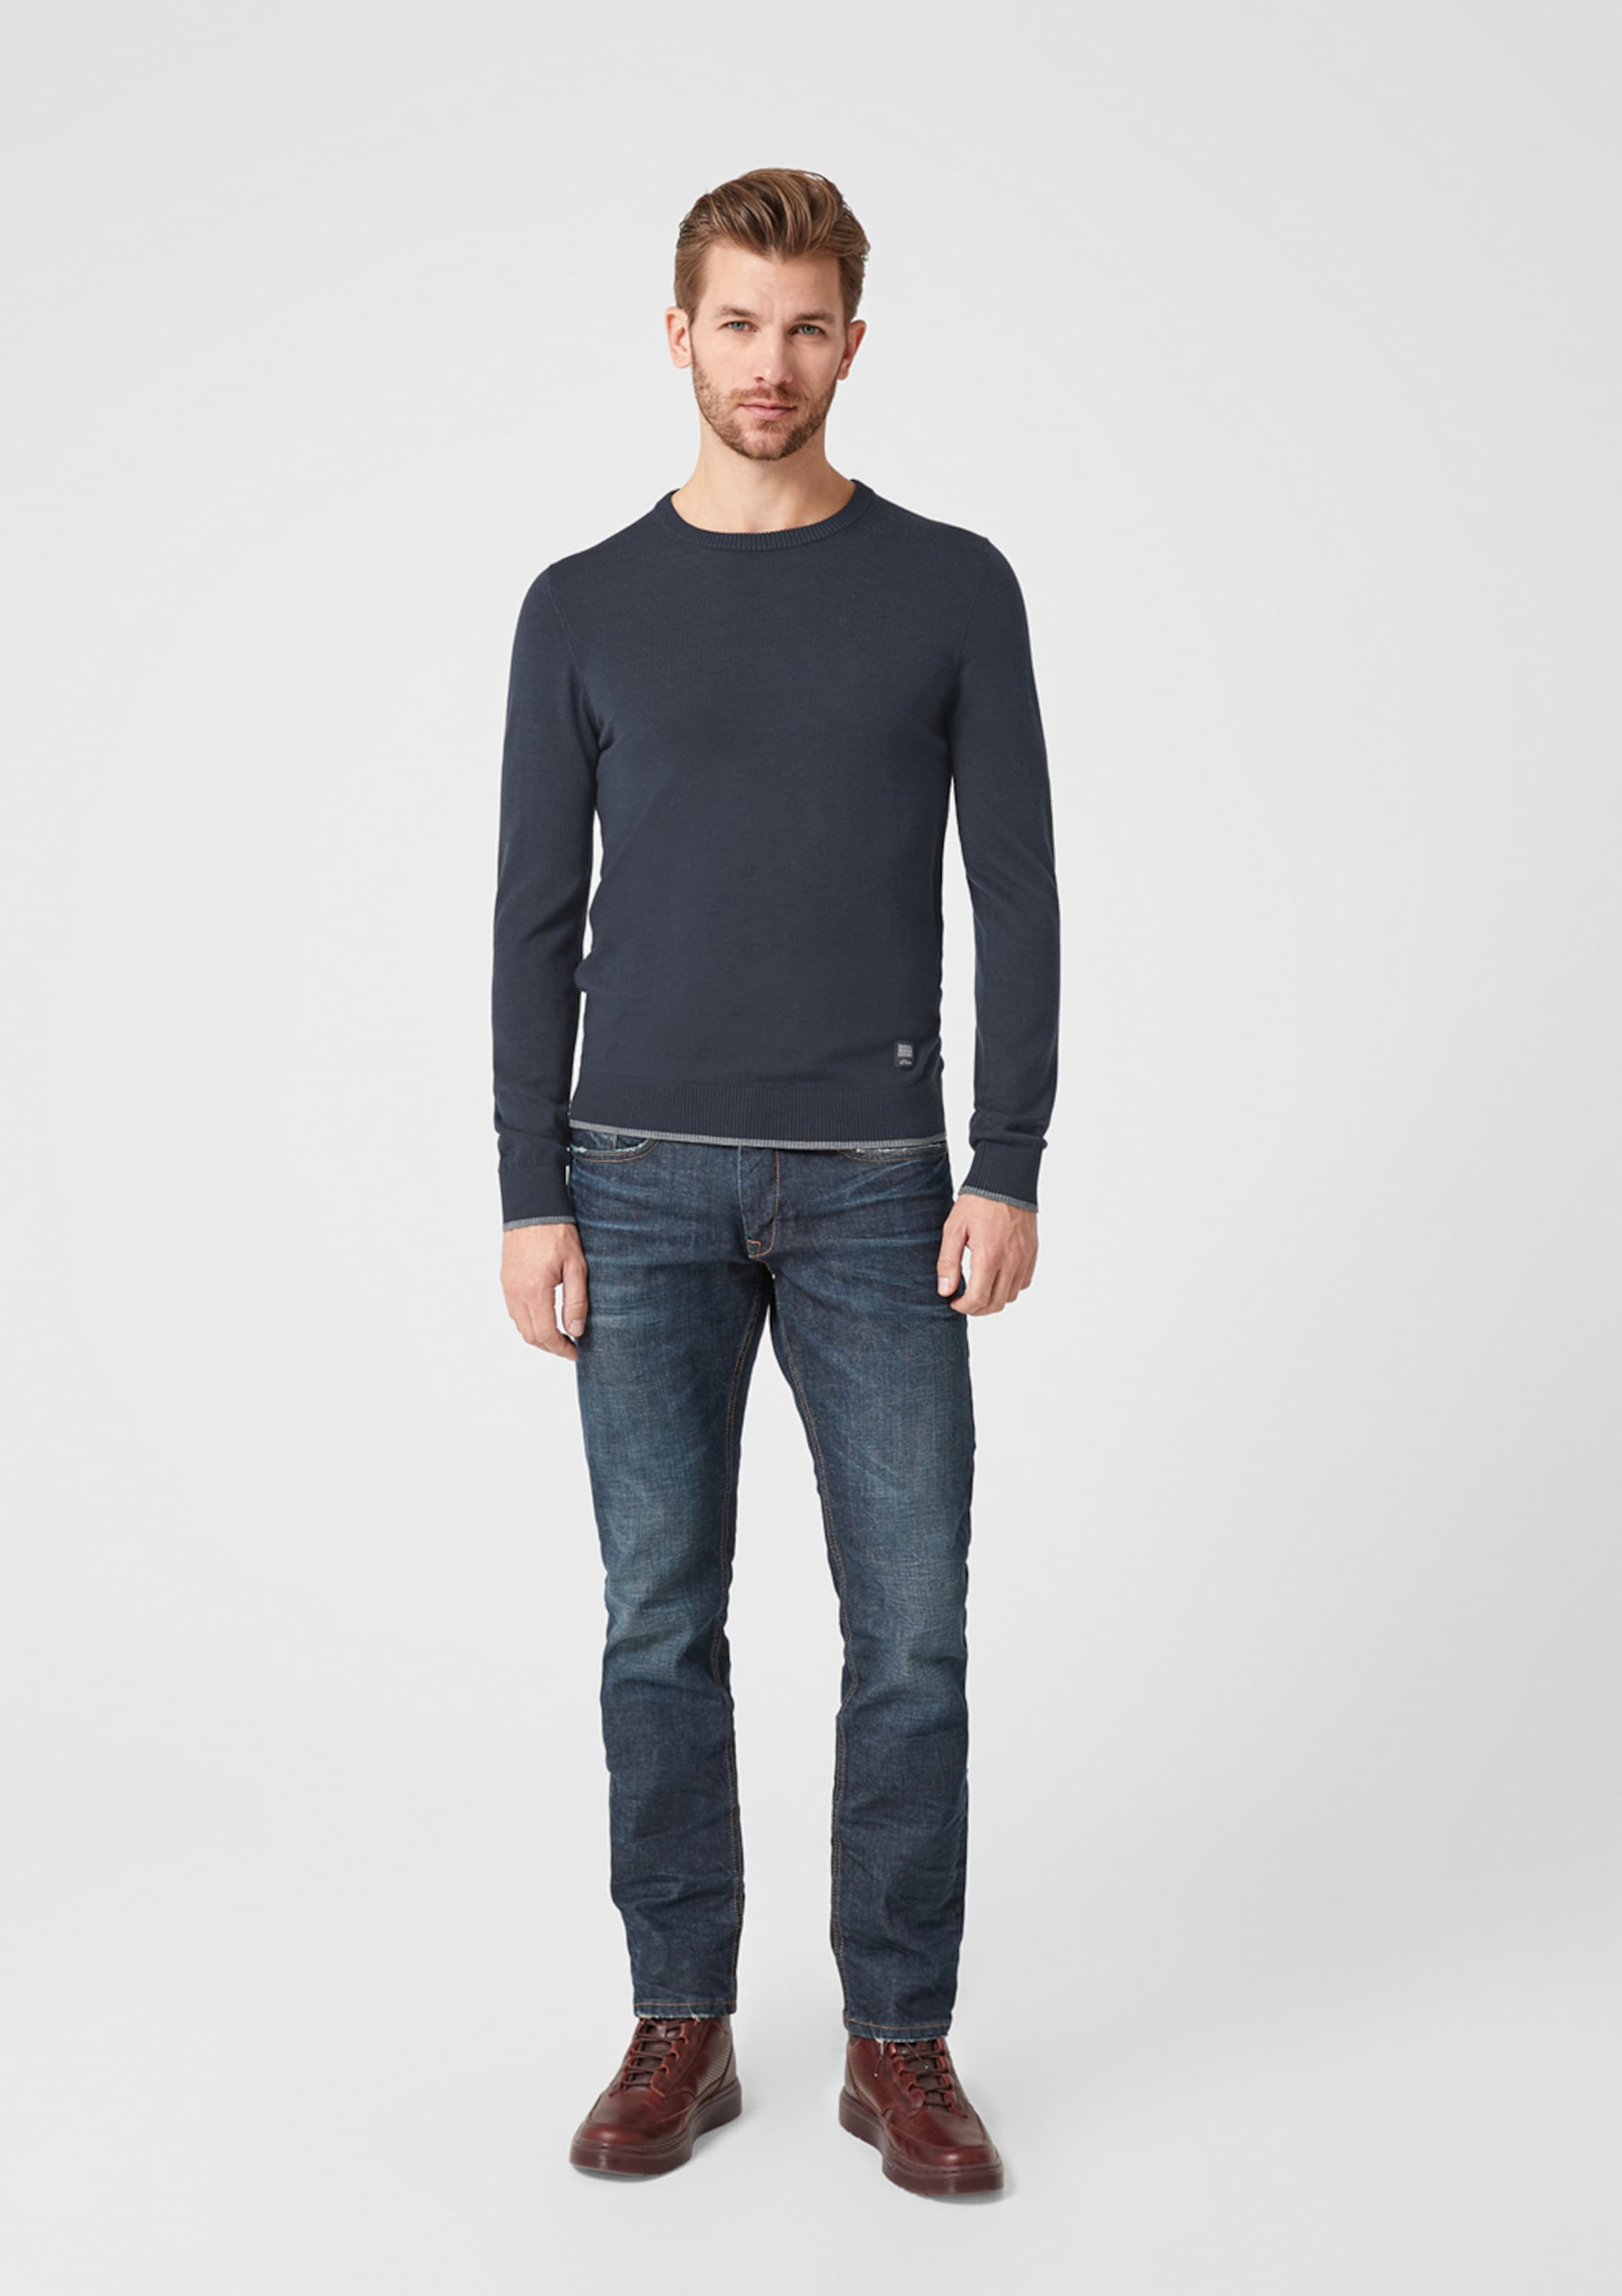 oliver Pullover S In GrauViolettblau Red Label mO0wyNnv8